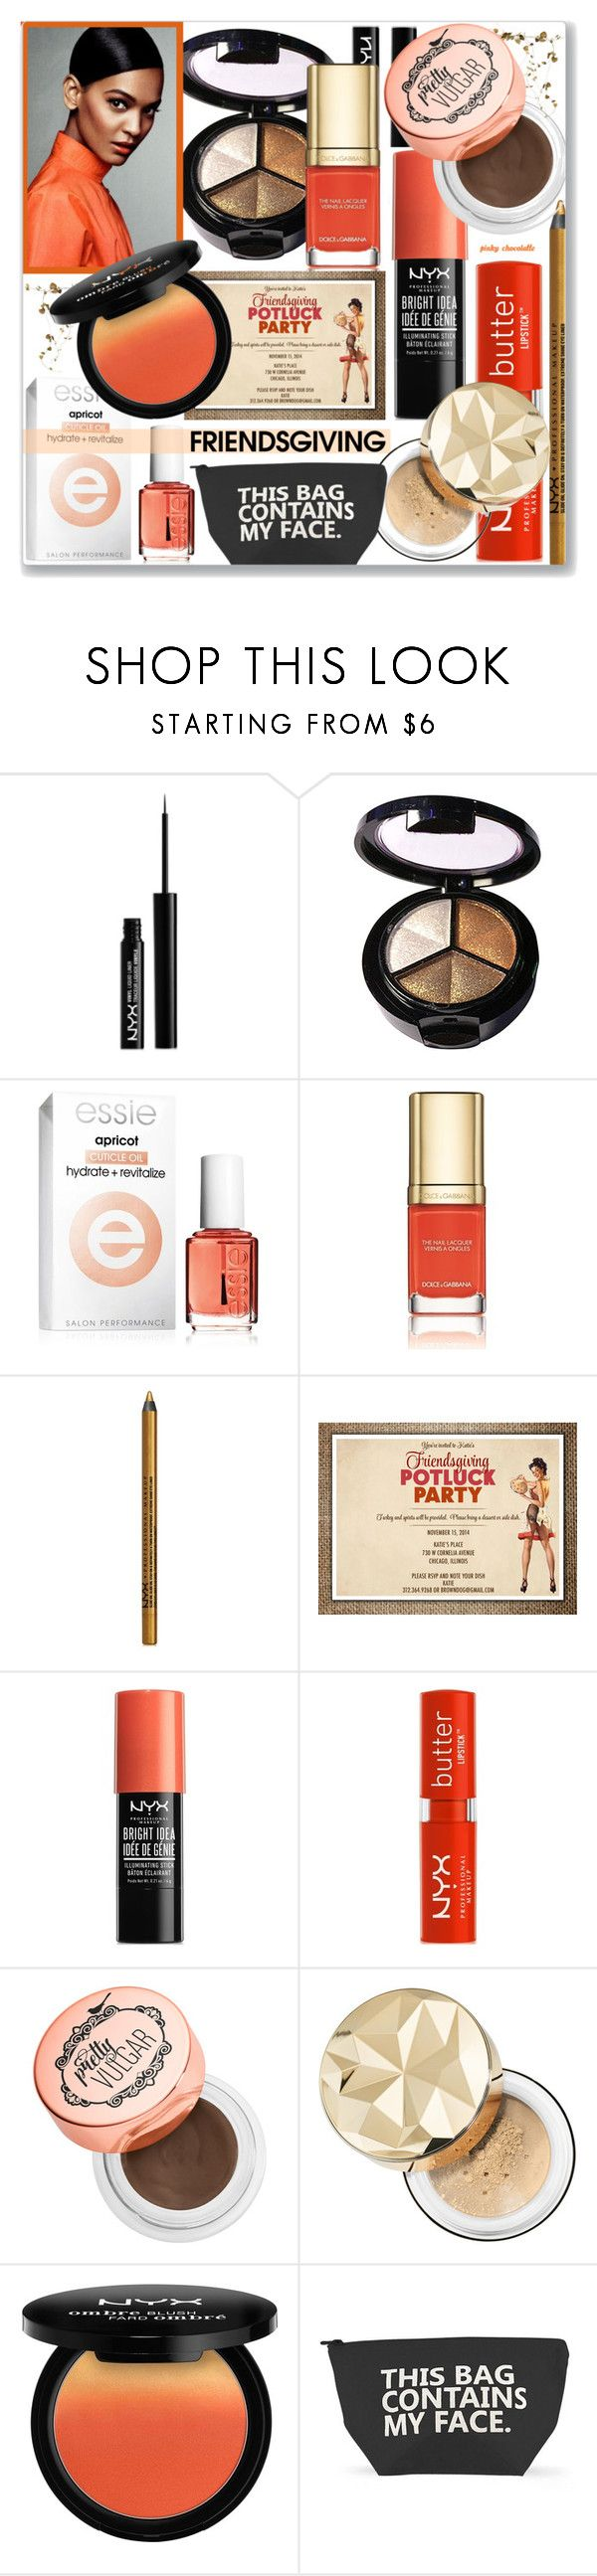 """""""Gather 'Round - Friendsgiving: 22/11/17"""" by pinky-chocolatte ❤ liked on Polyvore featuring beauty, NYX, My Makeup Brush Set, Essie, Dolce&Gabbana, Sephora Collection and Forever 21"""